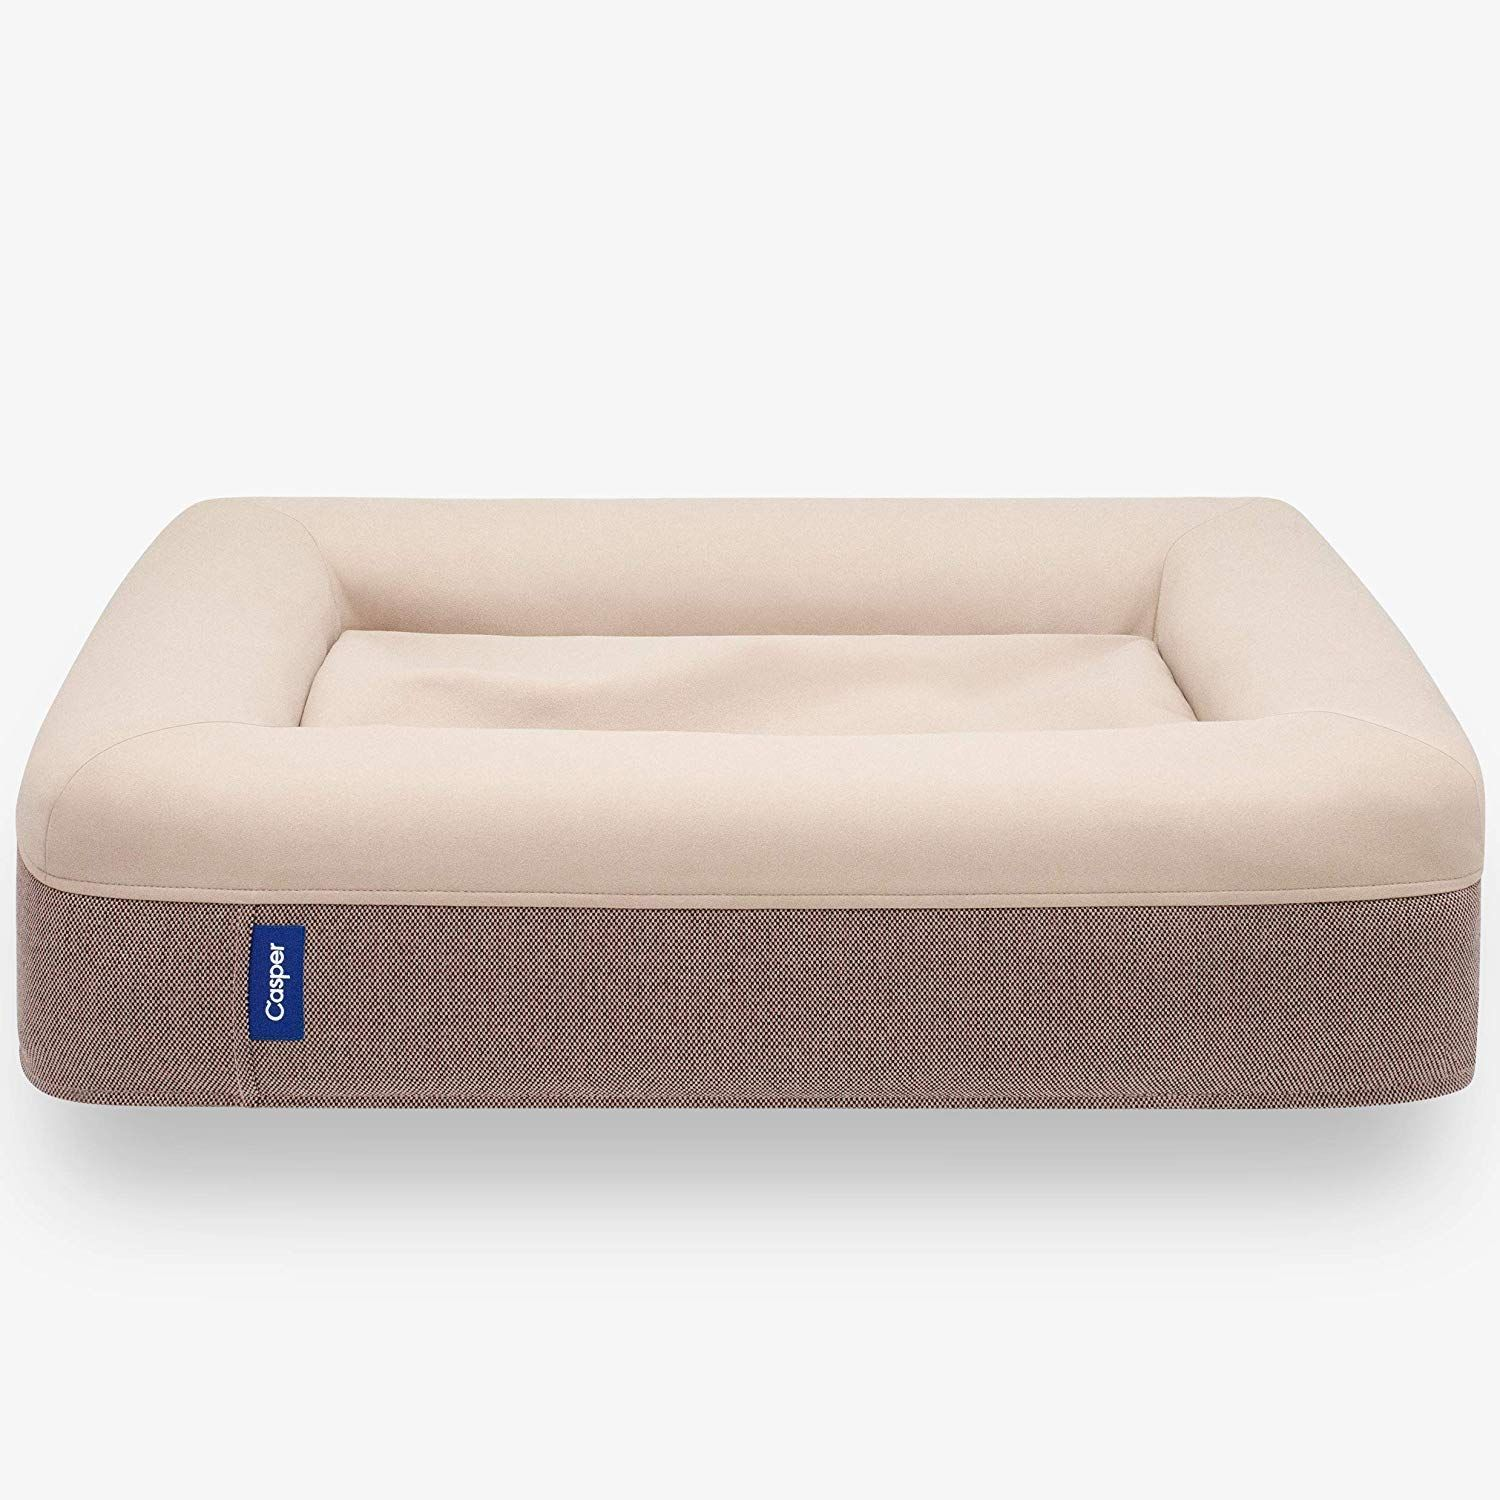 Casper Dog Bed, Plush Memory Foam in 2020 Extra large